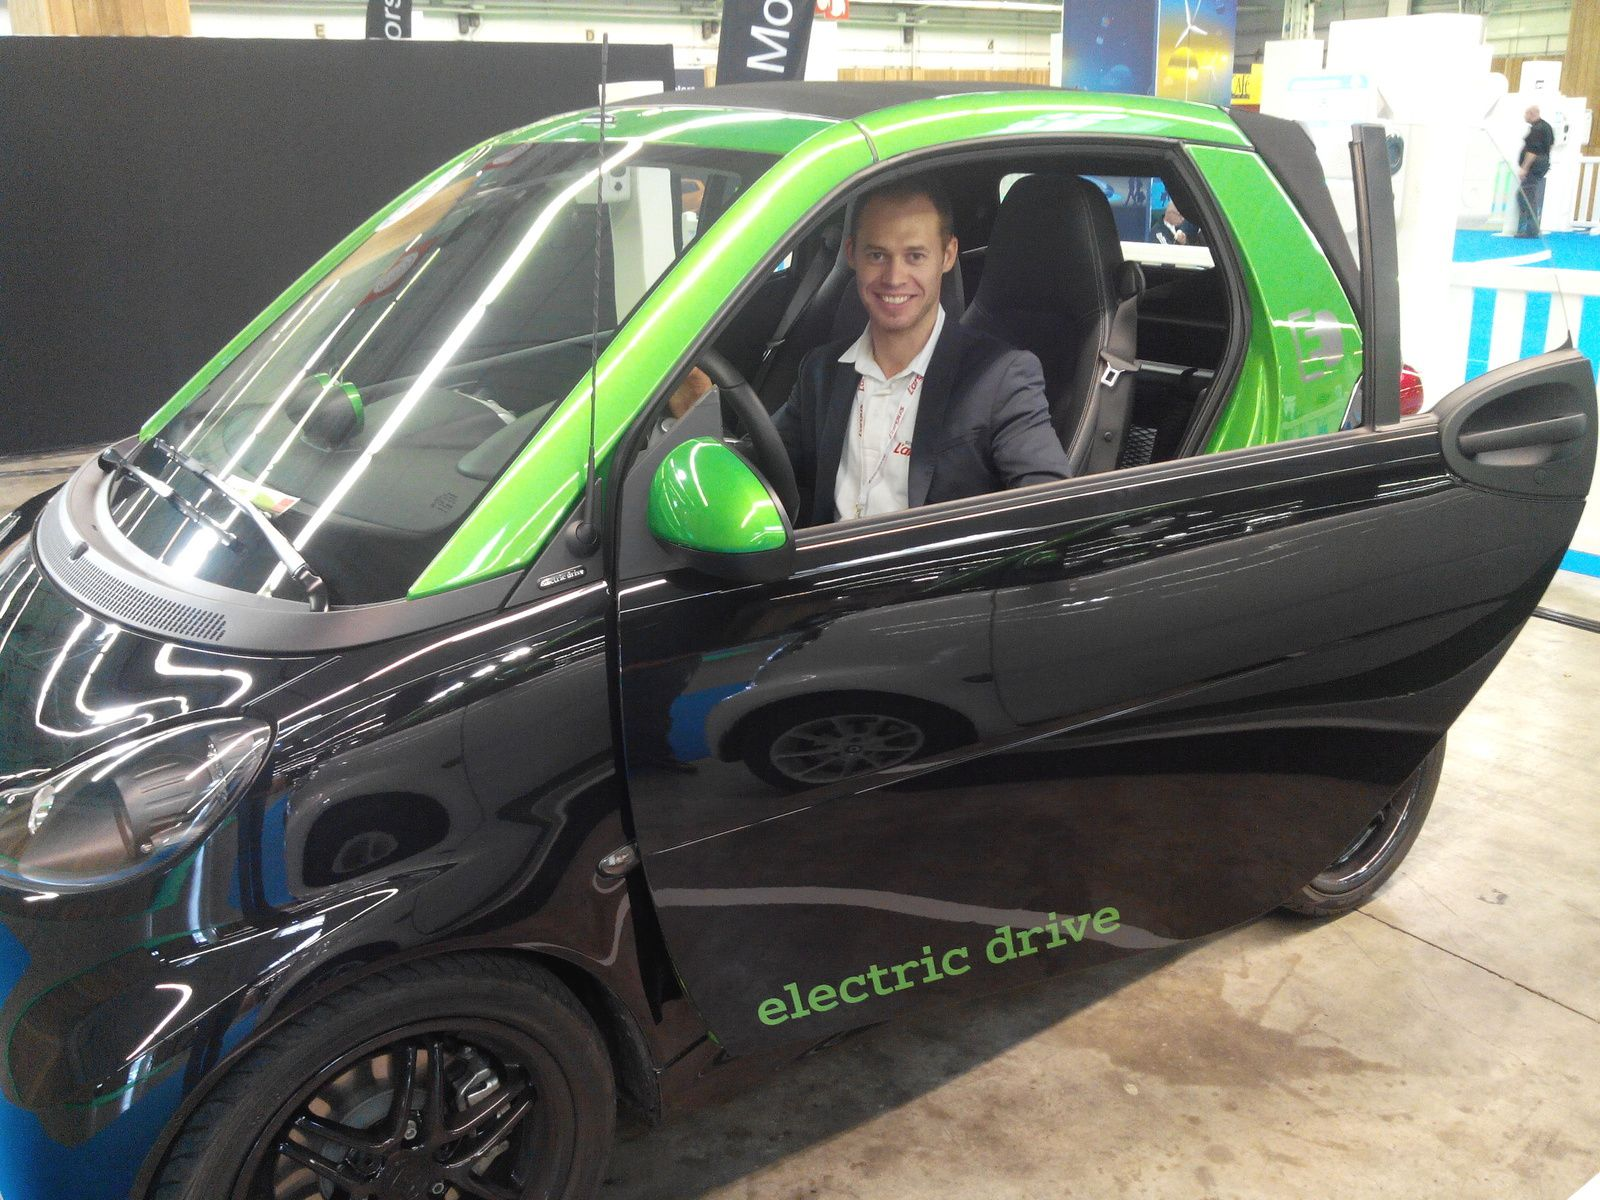 Essai de la Smart Fortwo Brabus electric drive!